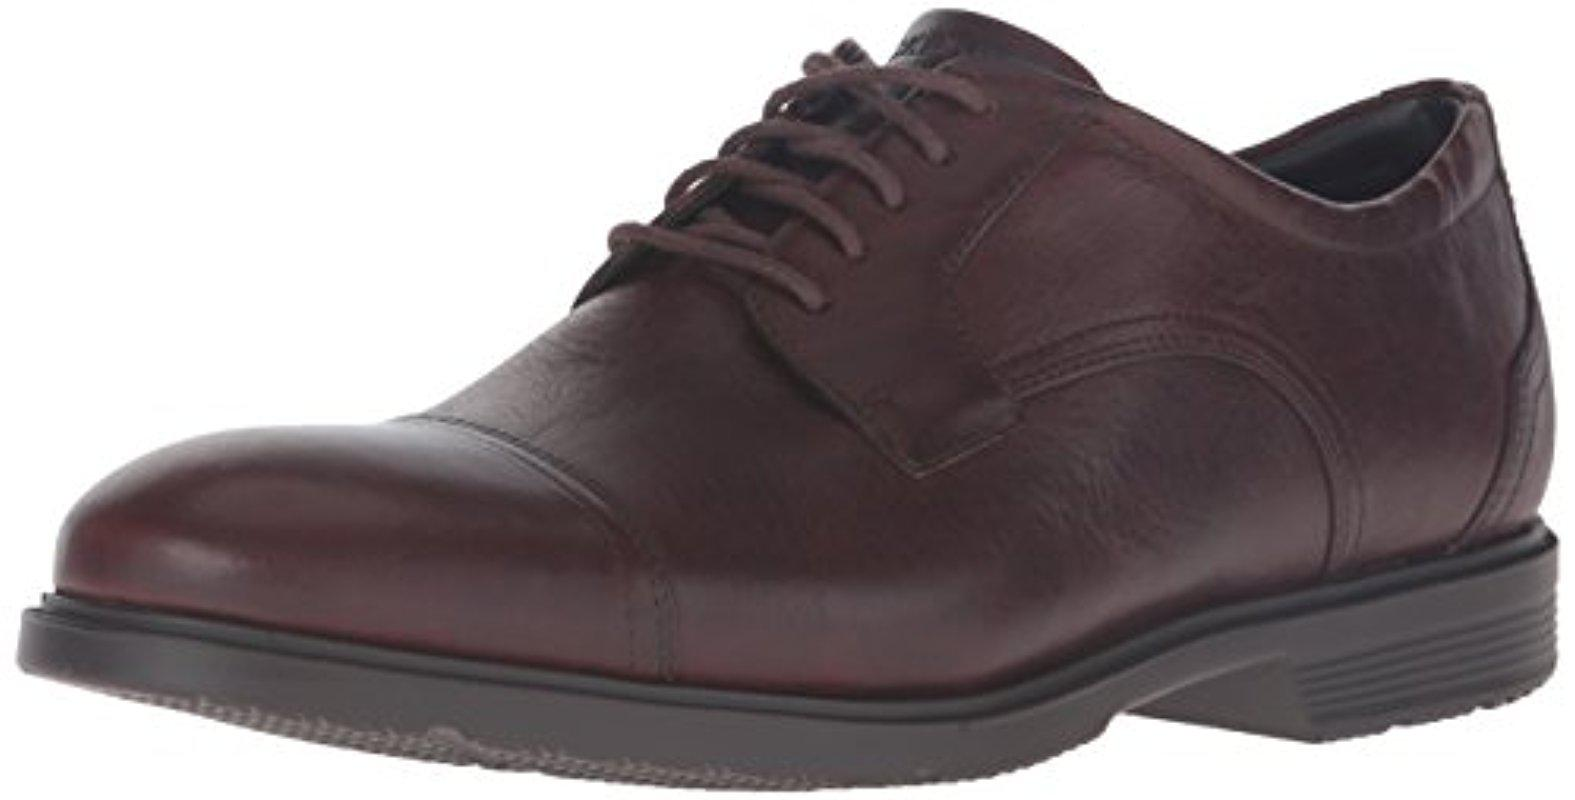 Rockport City Smart Plain Toe Oxford(Men's) -Black Leather From China Online Discount Free Shipping Deals Online Free Shipping Get To Buy uu6IQO9vl9